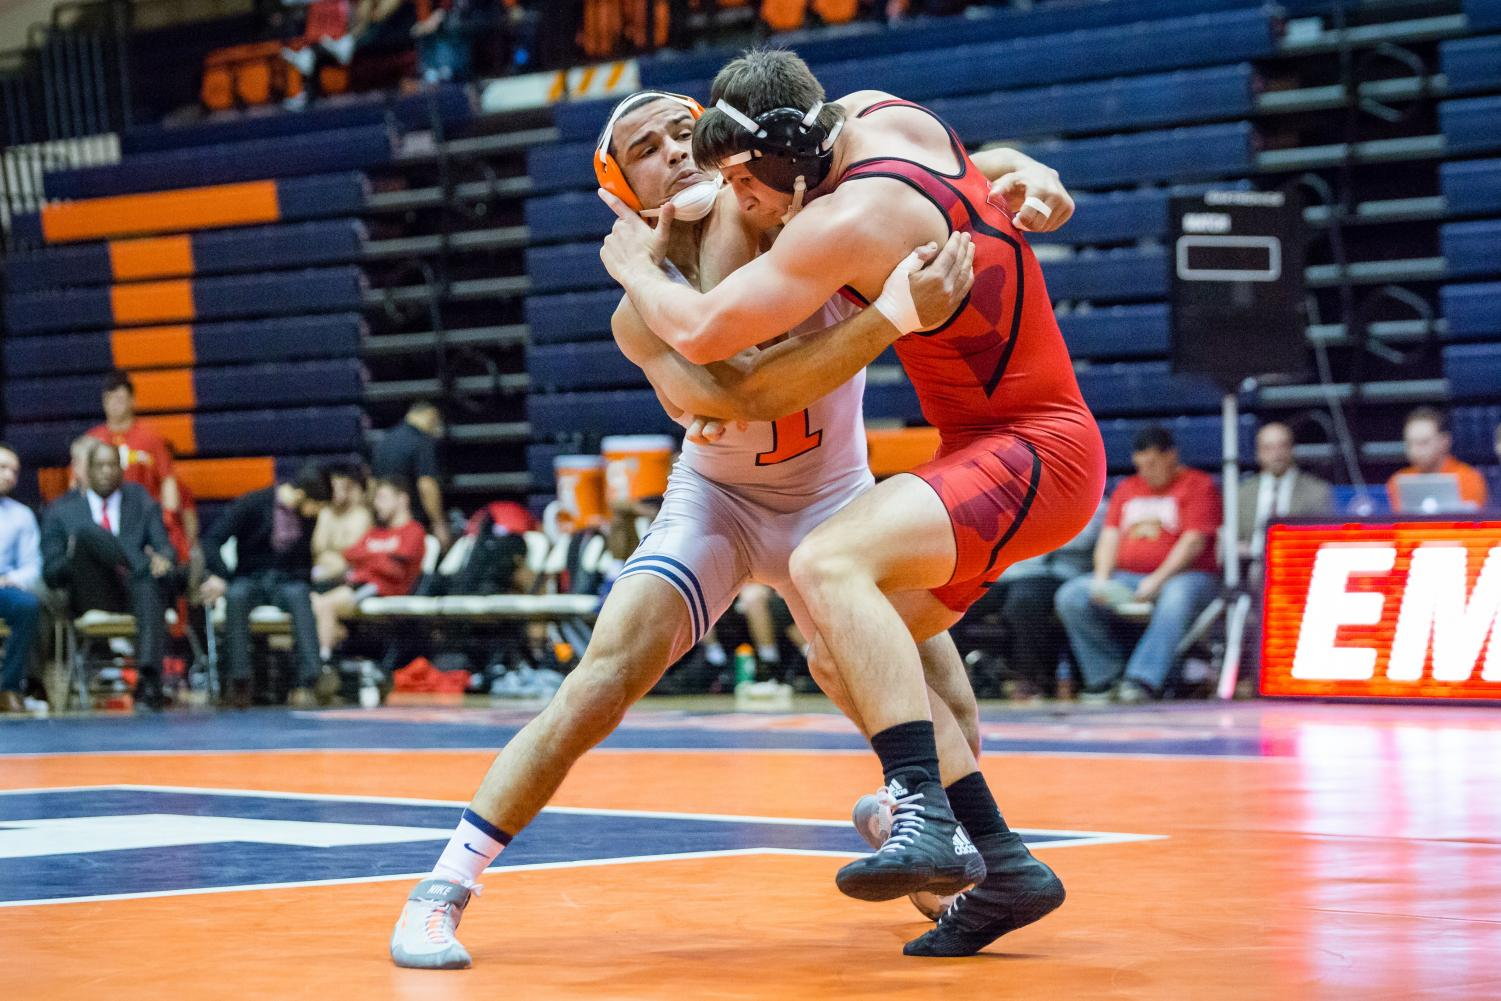 Illinois' Emery Parker wrestles with Maryland's Niko Capello in the 184-pound weight class during the meet at Huff Hall on Jan. 28. The Illini won 25-18.